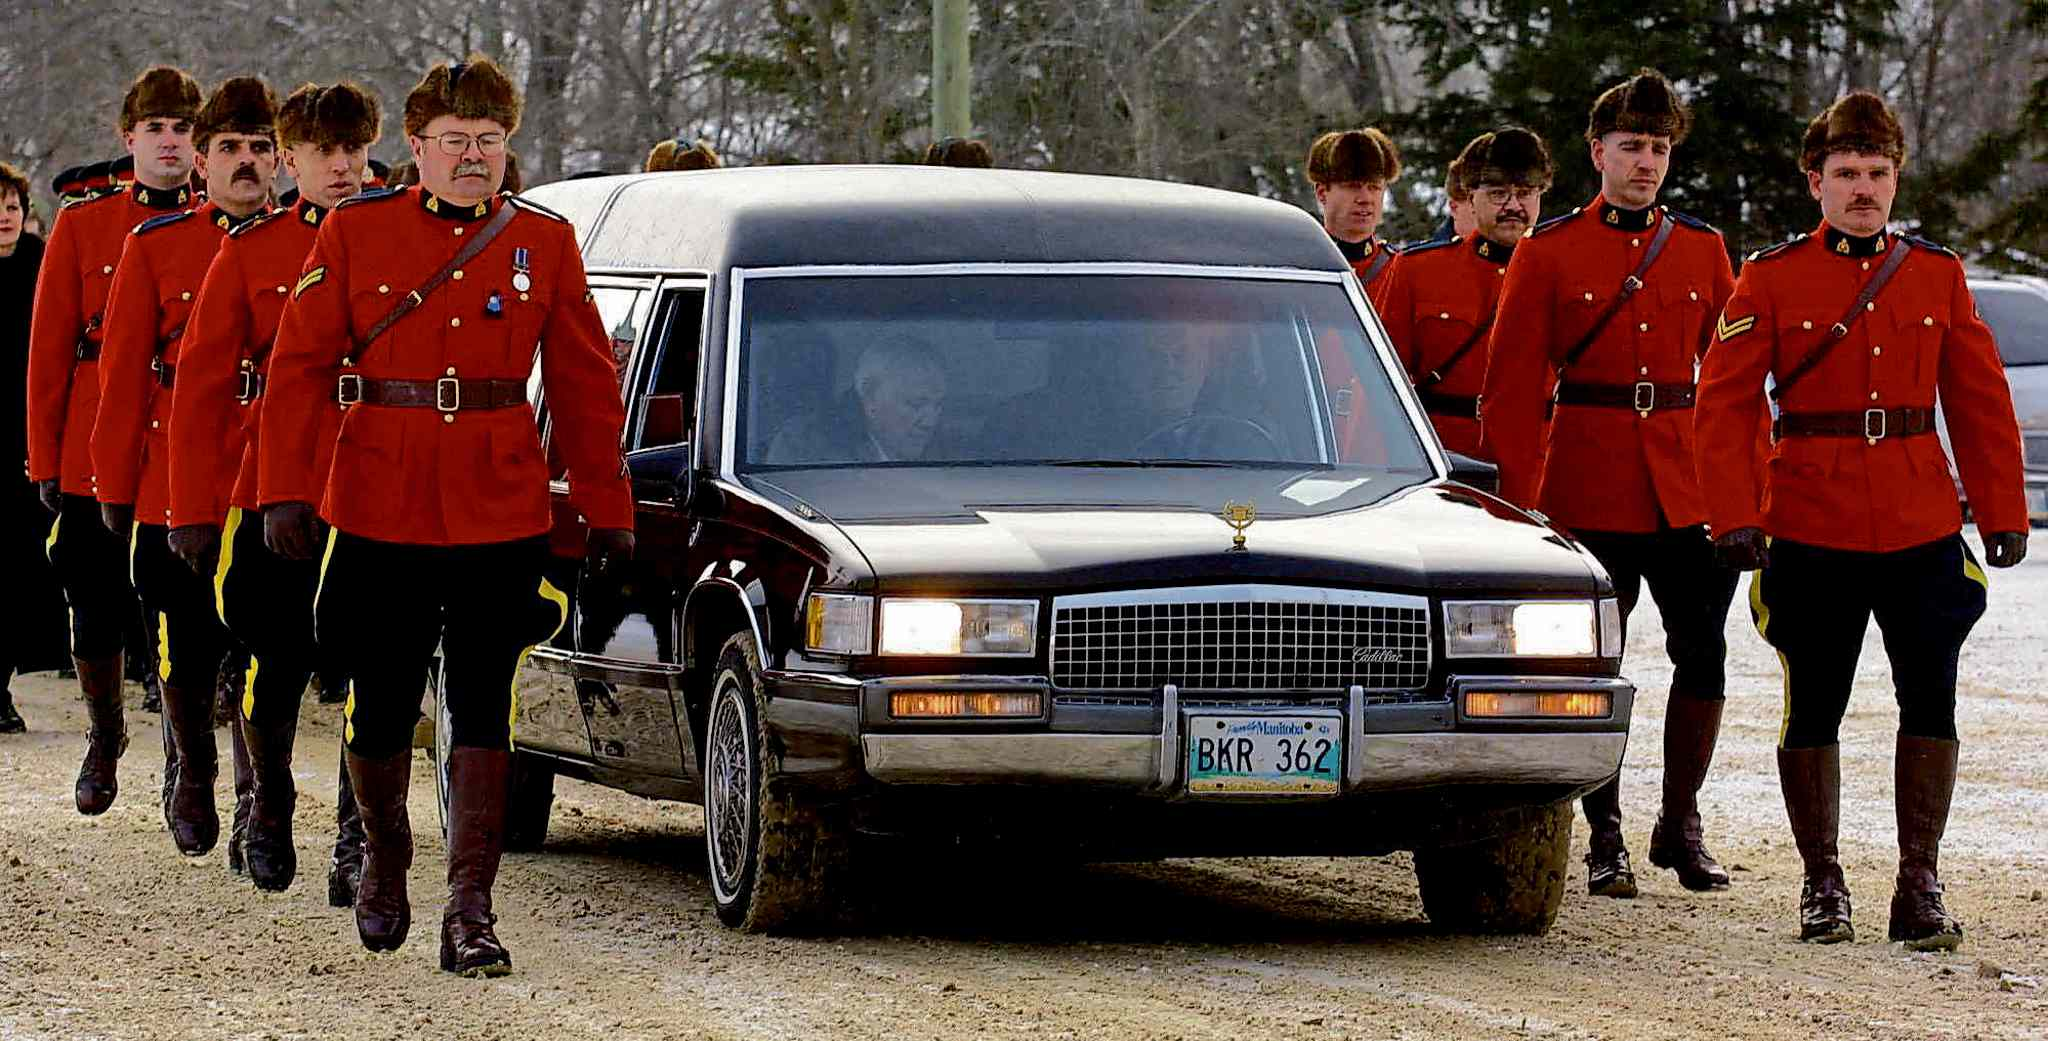 The hearse containing the casket of RCMP Constable Dennis Strongquill is escorted by some of the over 300 police officers who came to the church in Powerview, Man. for his memorial service on Thursday, Dec. 27, 2001.